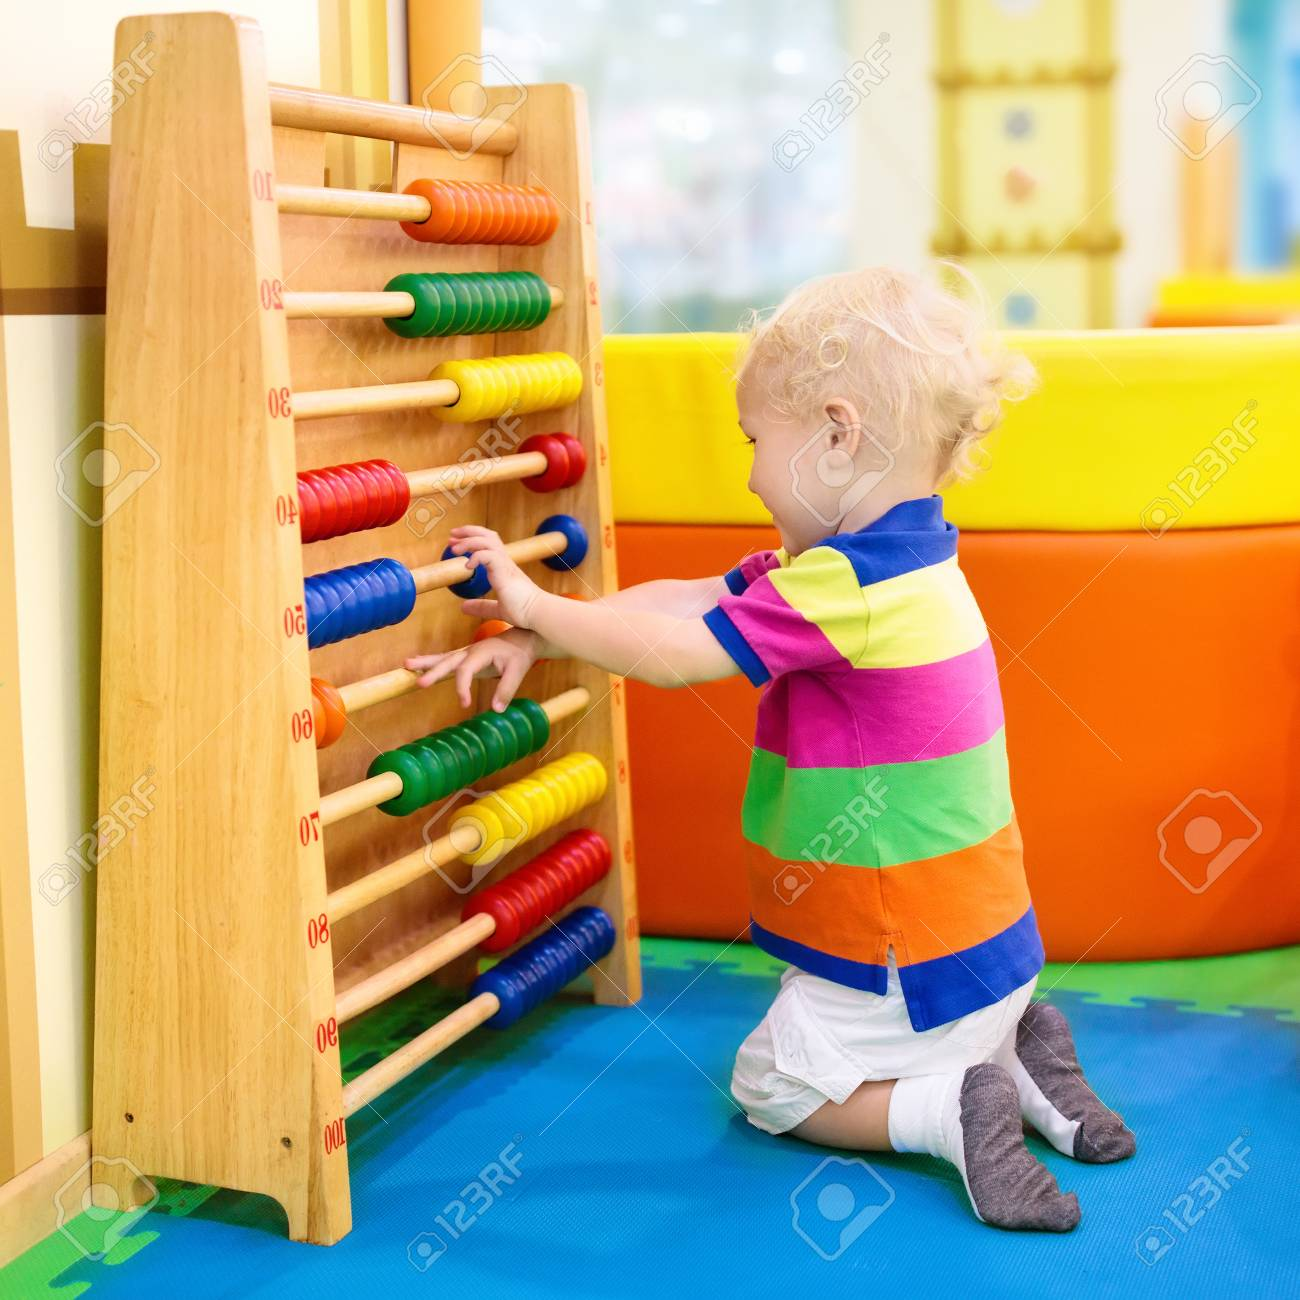 Child Playing With Wooden Abacus Educational Toys For Kids Stock Photo Picture And Royalty Free Image Image 95961587